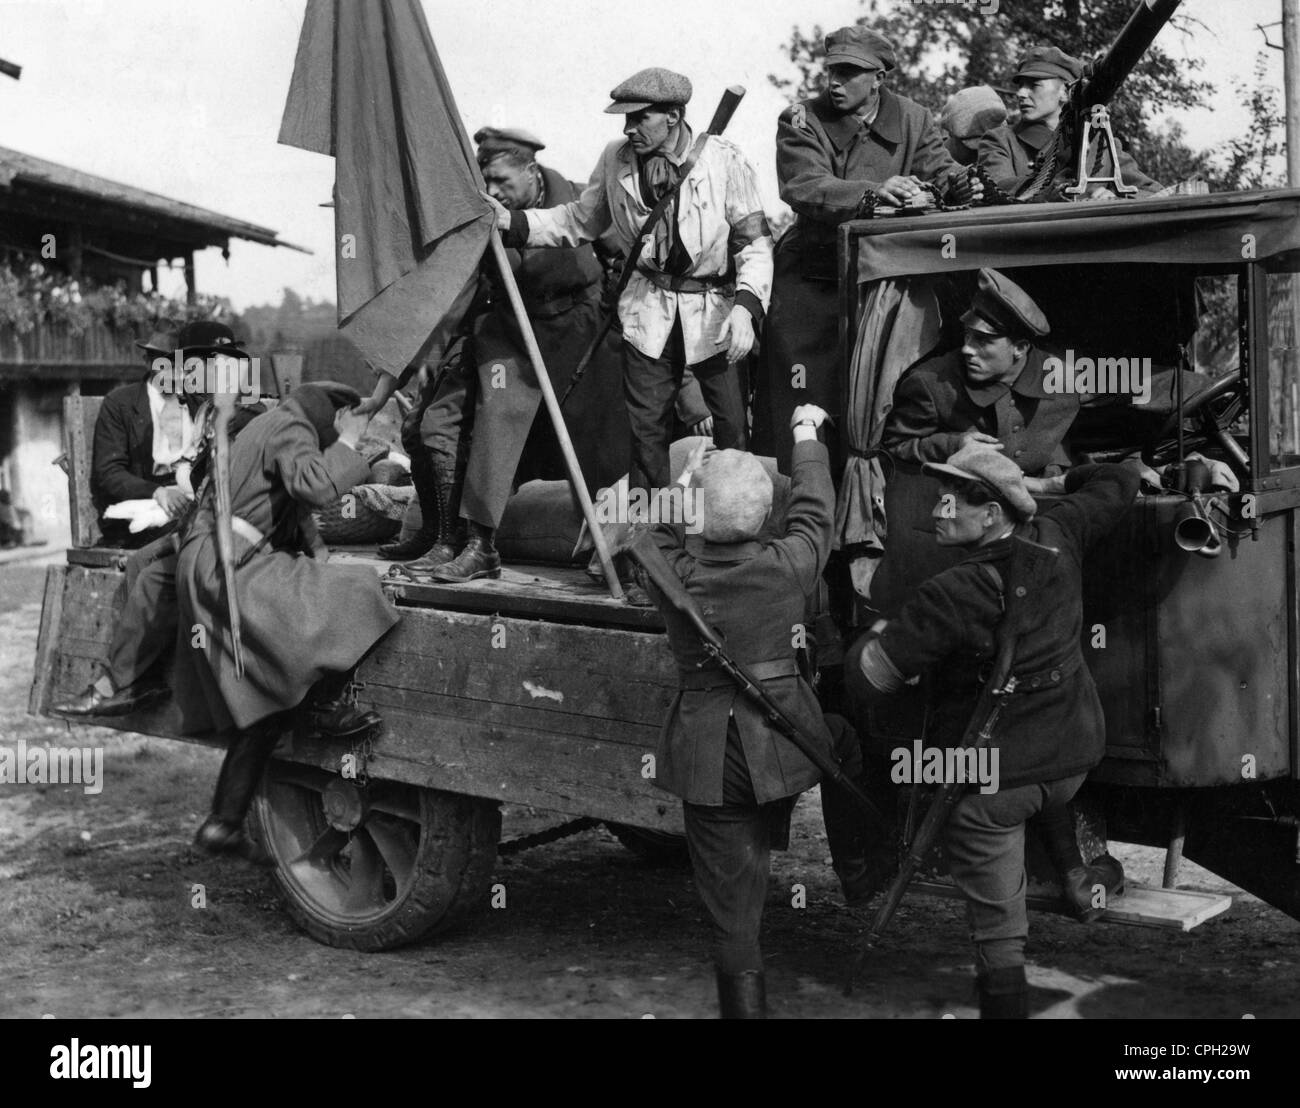 events, German Revolution 1918 - 1919, revolutionists mopping up a farmhouse, 1919, loot, looting, communists, Germany, - Stock Image